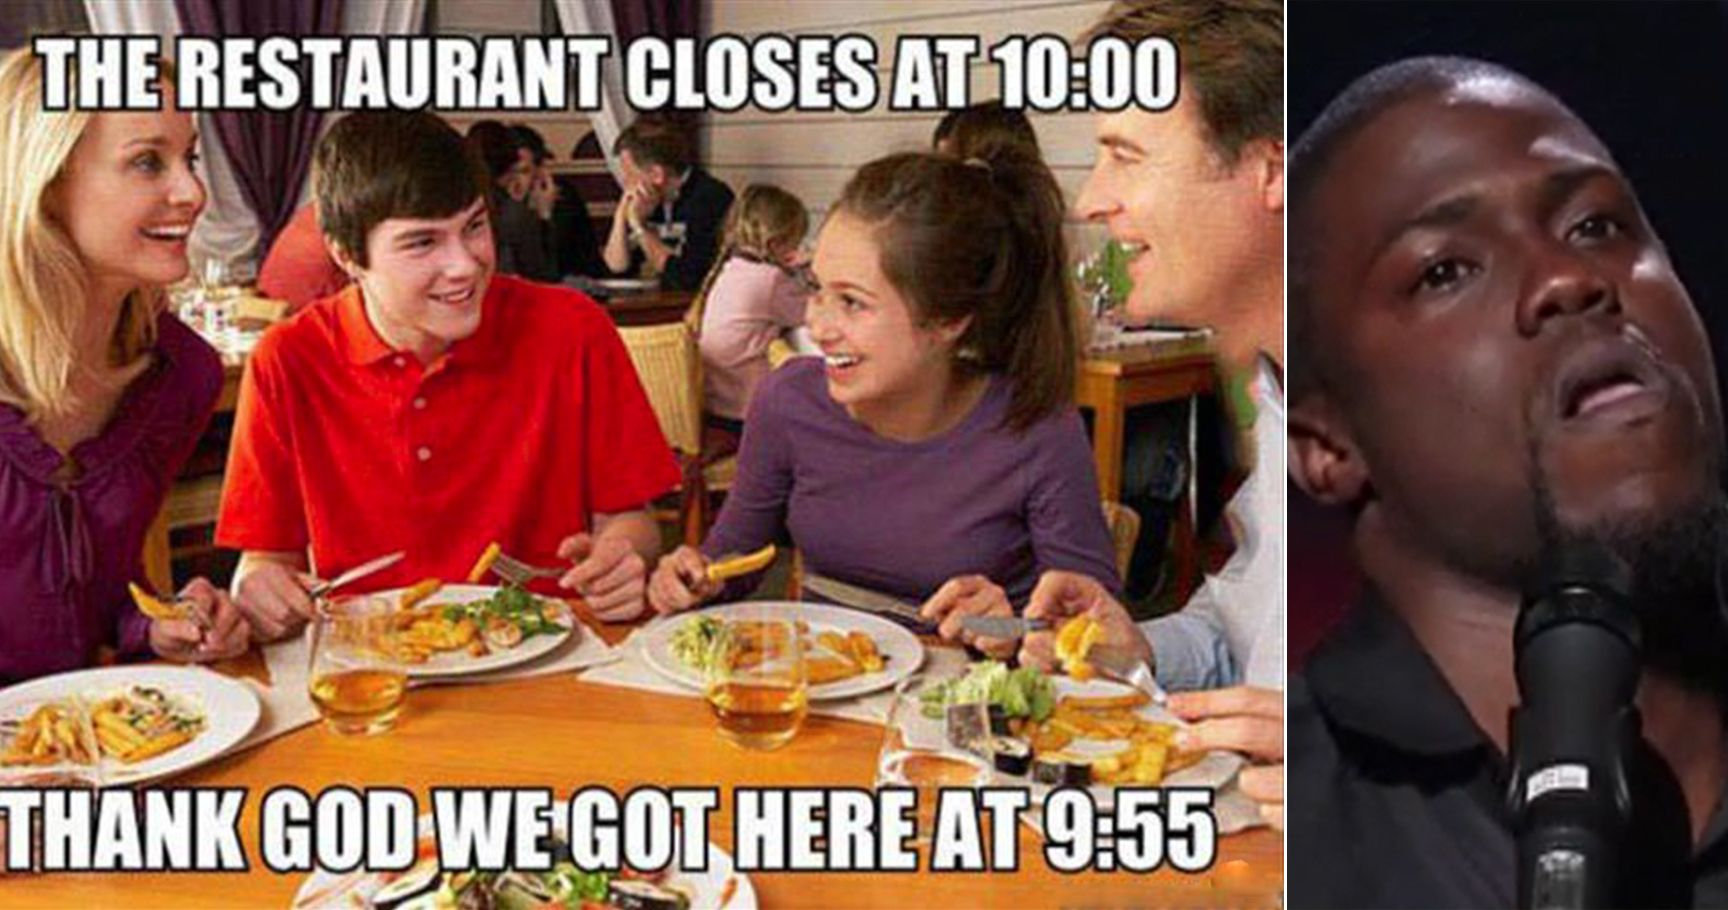 15 Things People Do At Restaurants That Drive Servers Crazy